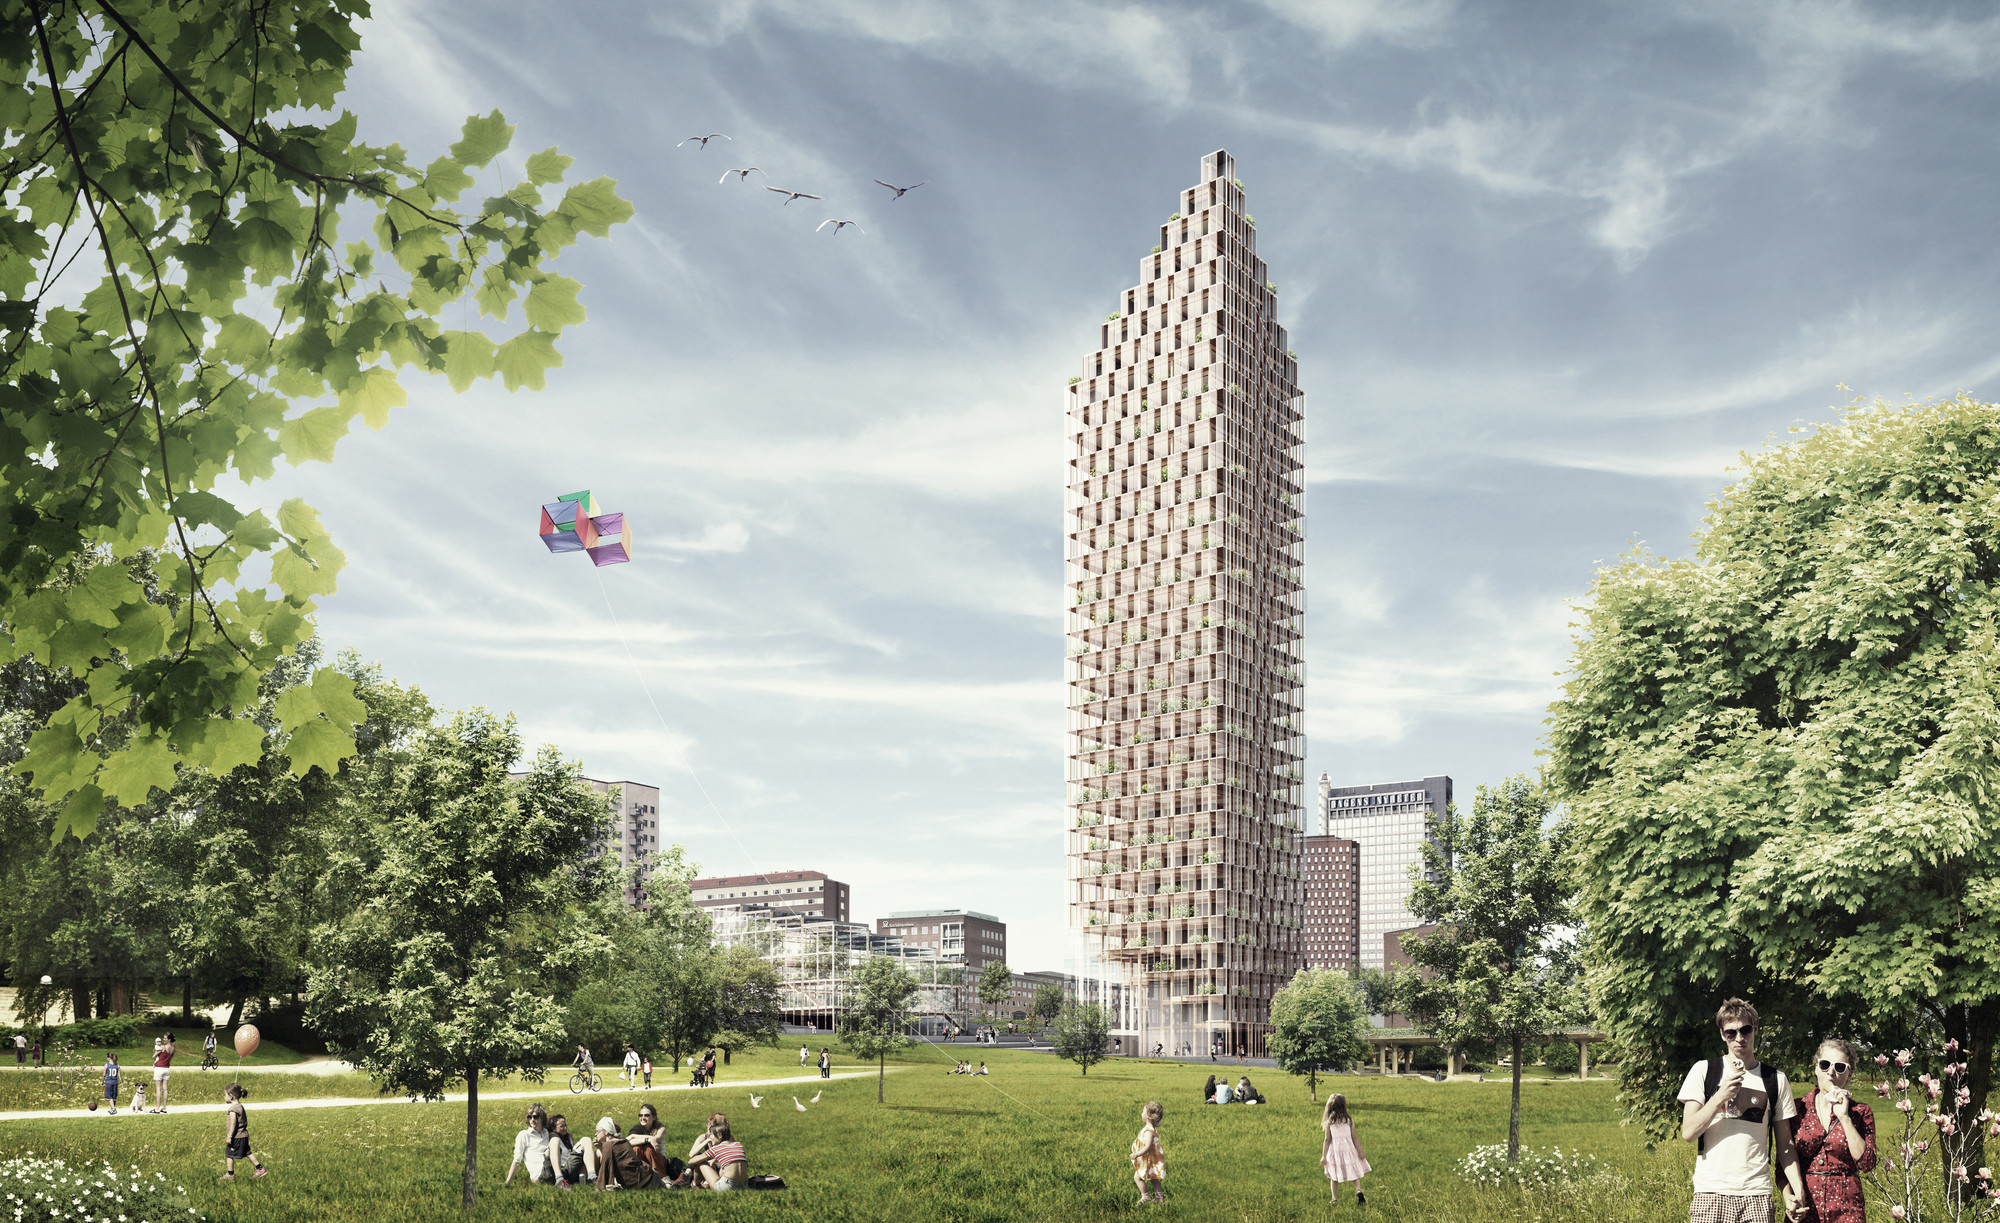 Wooden Skyscraper / Berg | C.F. Møller Architects with DinnellJohansson, Courtesy of C.F. Møller Architects with DinellJohansson